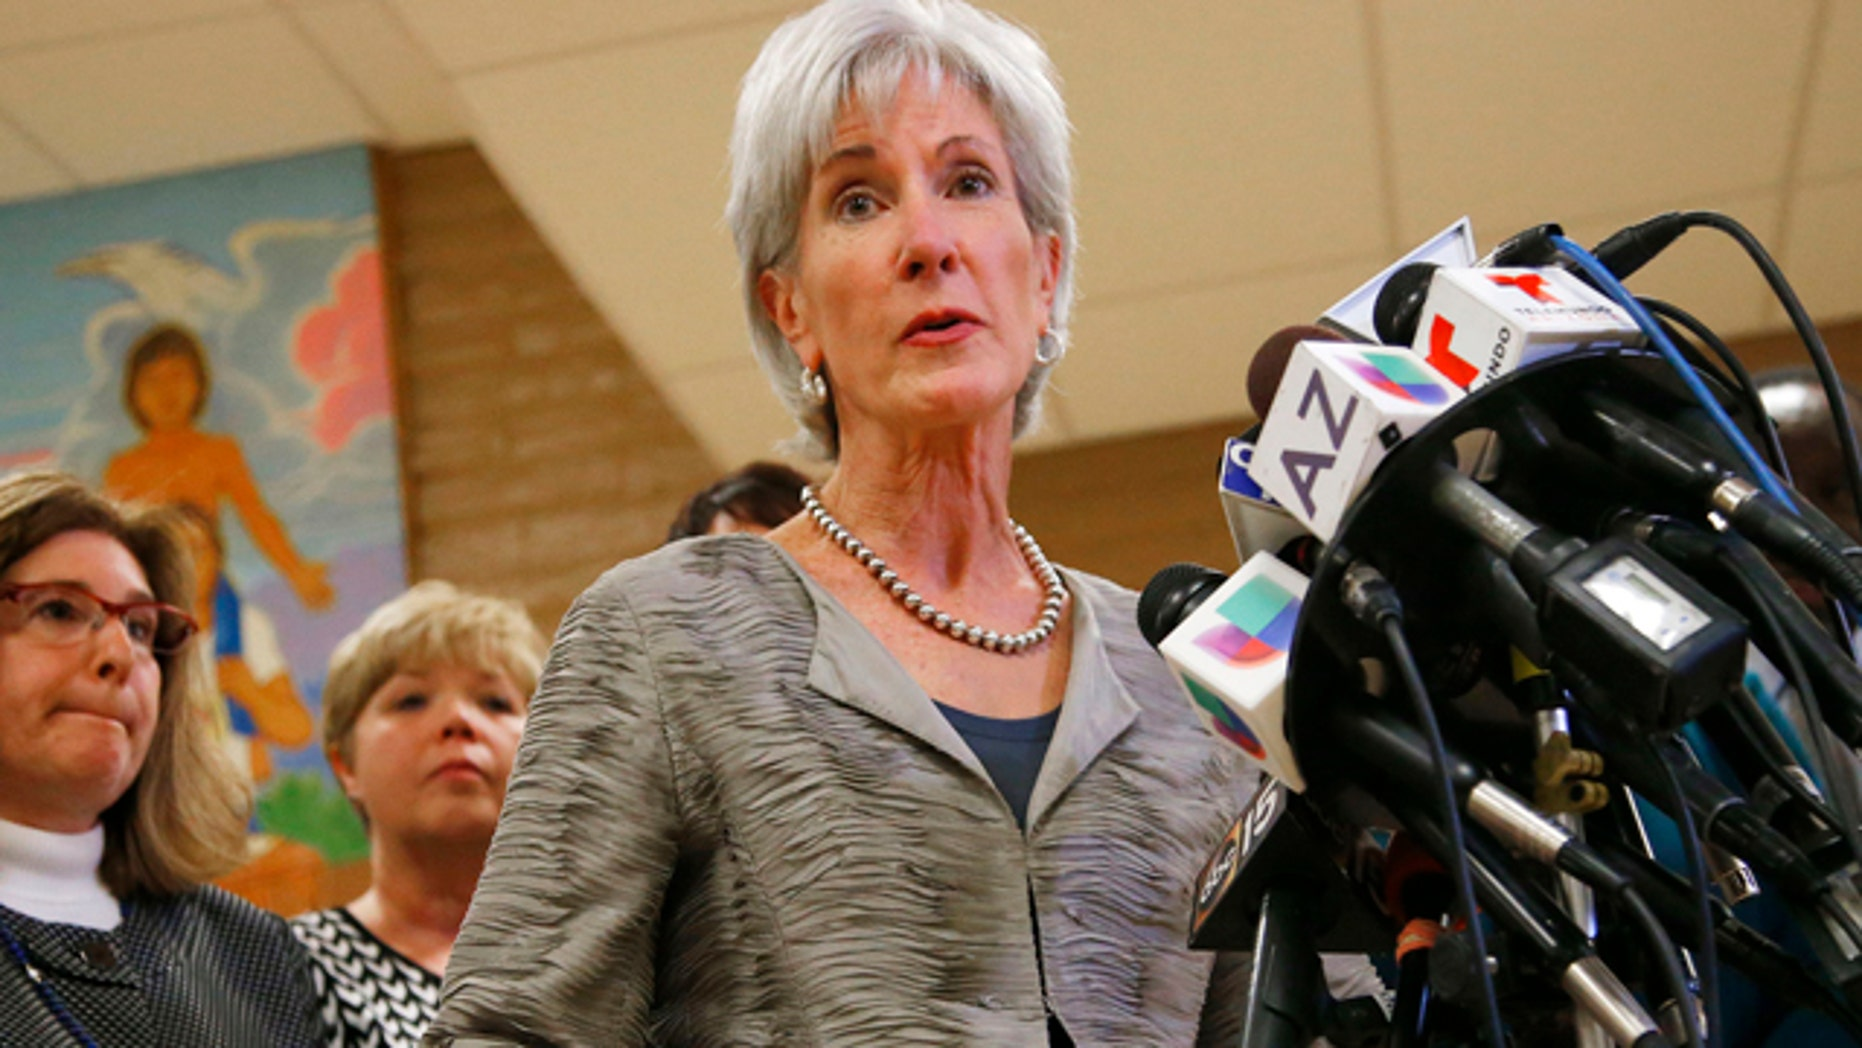 Oct. 24, 2013: Health and Human Services Secretary Kathleen Sebelius answers a question during a news conference after visiting the Wesley Health Center.